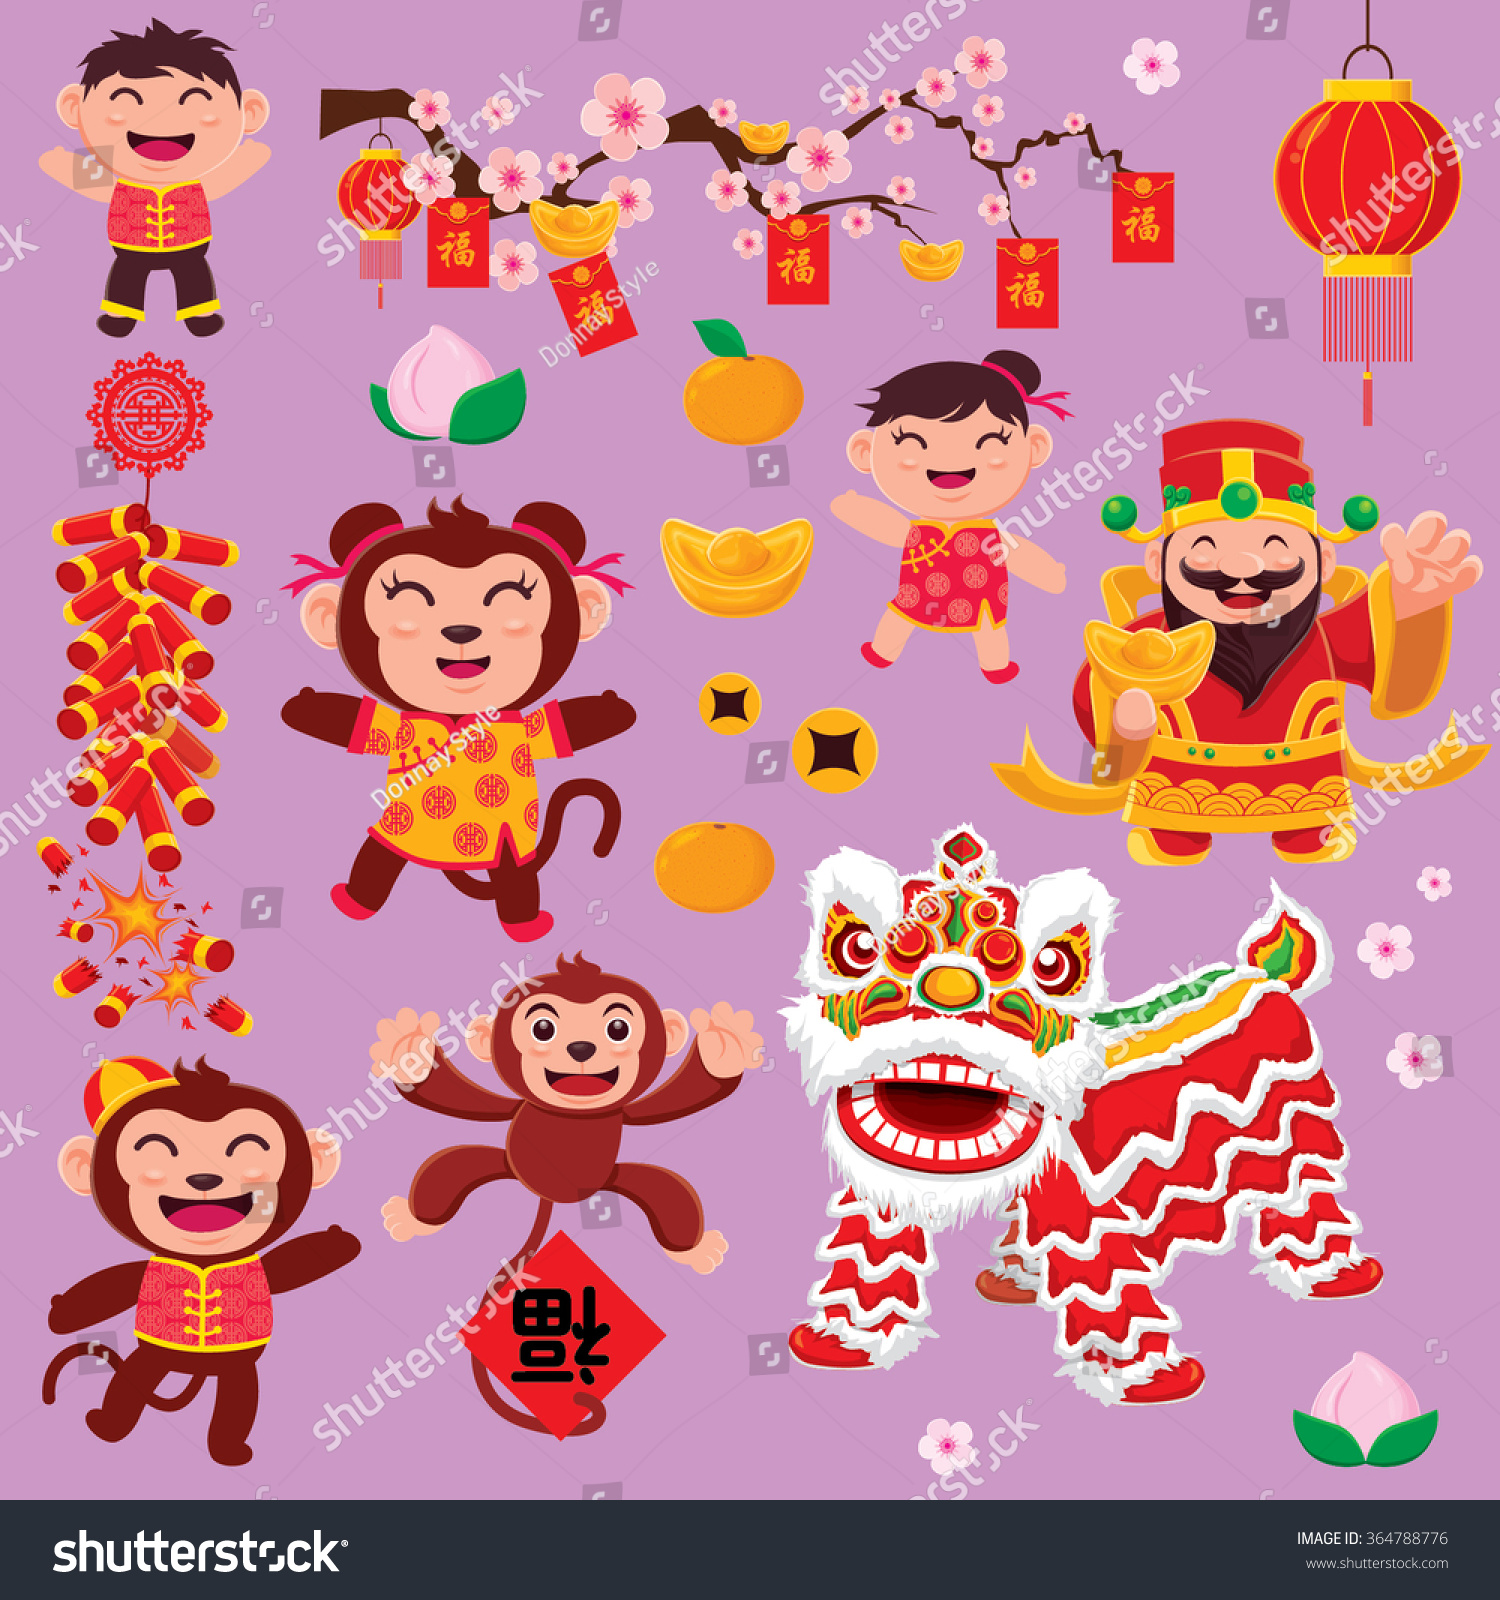 chinese new year celebration essay Article about 15-day celebration of chinese new year in glossary of chinese new year and chinese culture, customs and traditions.